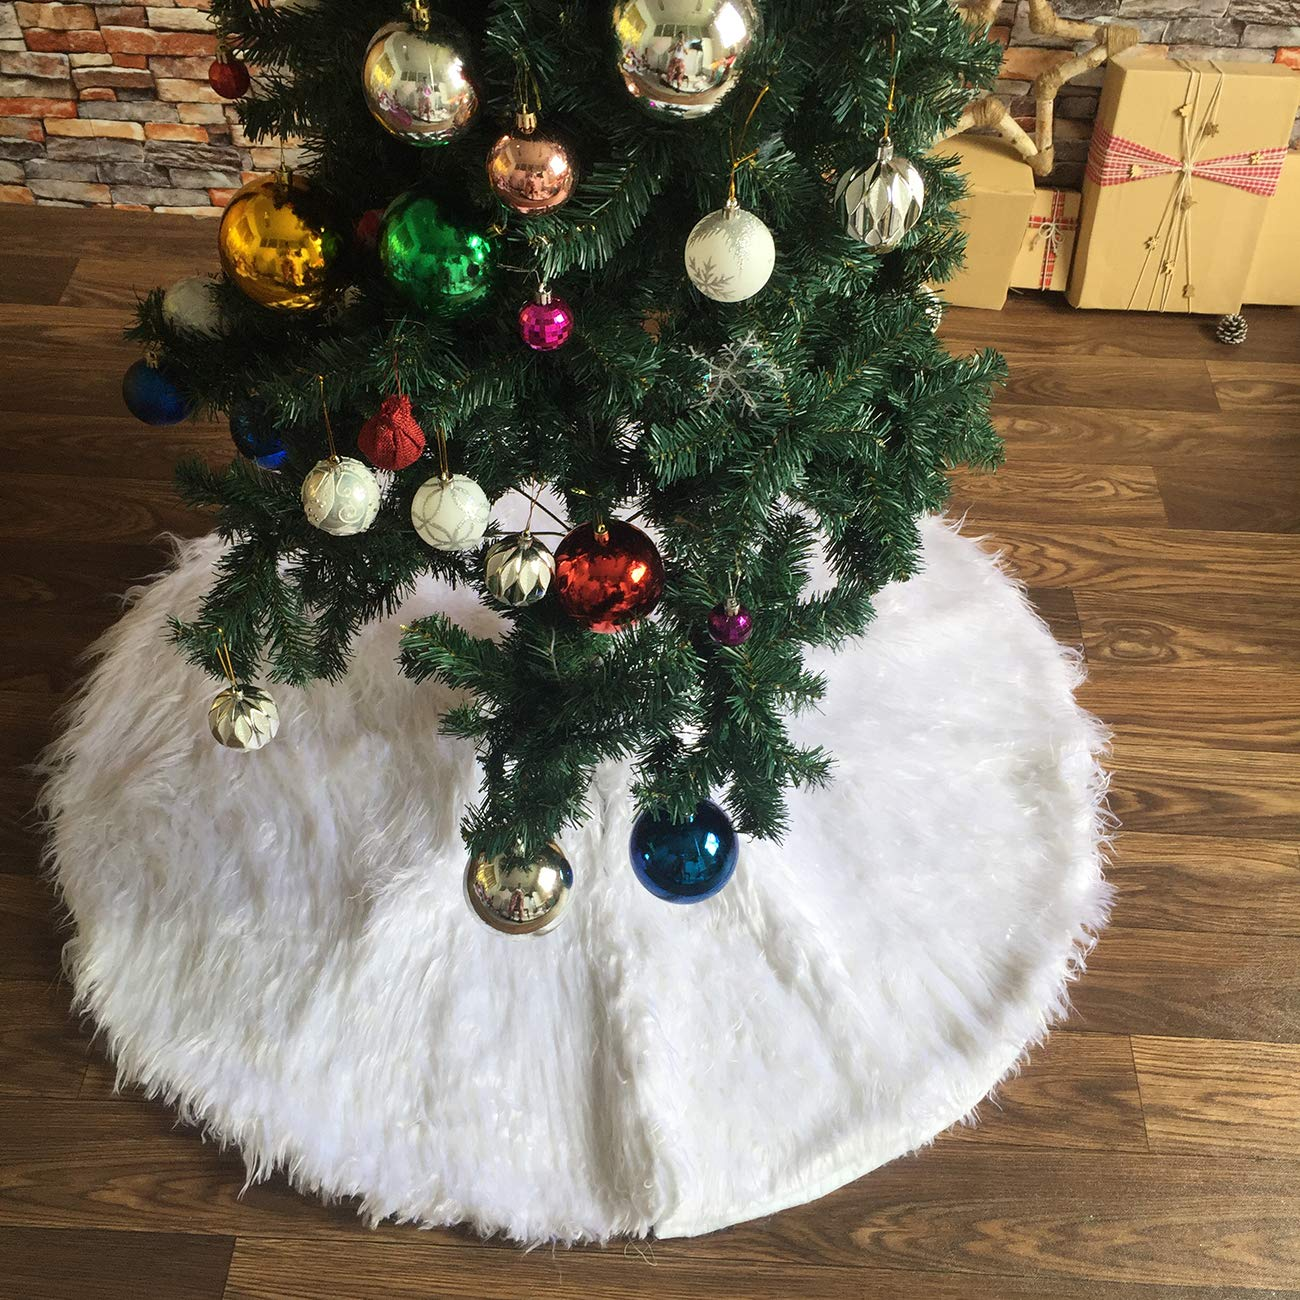 ShiyiUP White Christmas Tree Decoration Skirt with The Embroidery of Snow for Merry Christmas Party Decoration